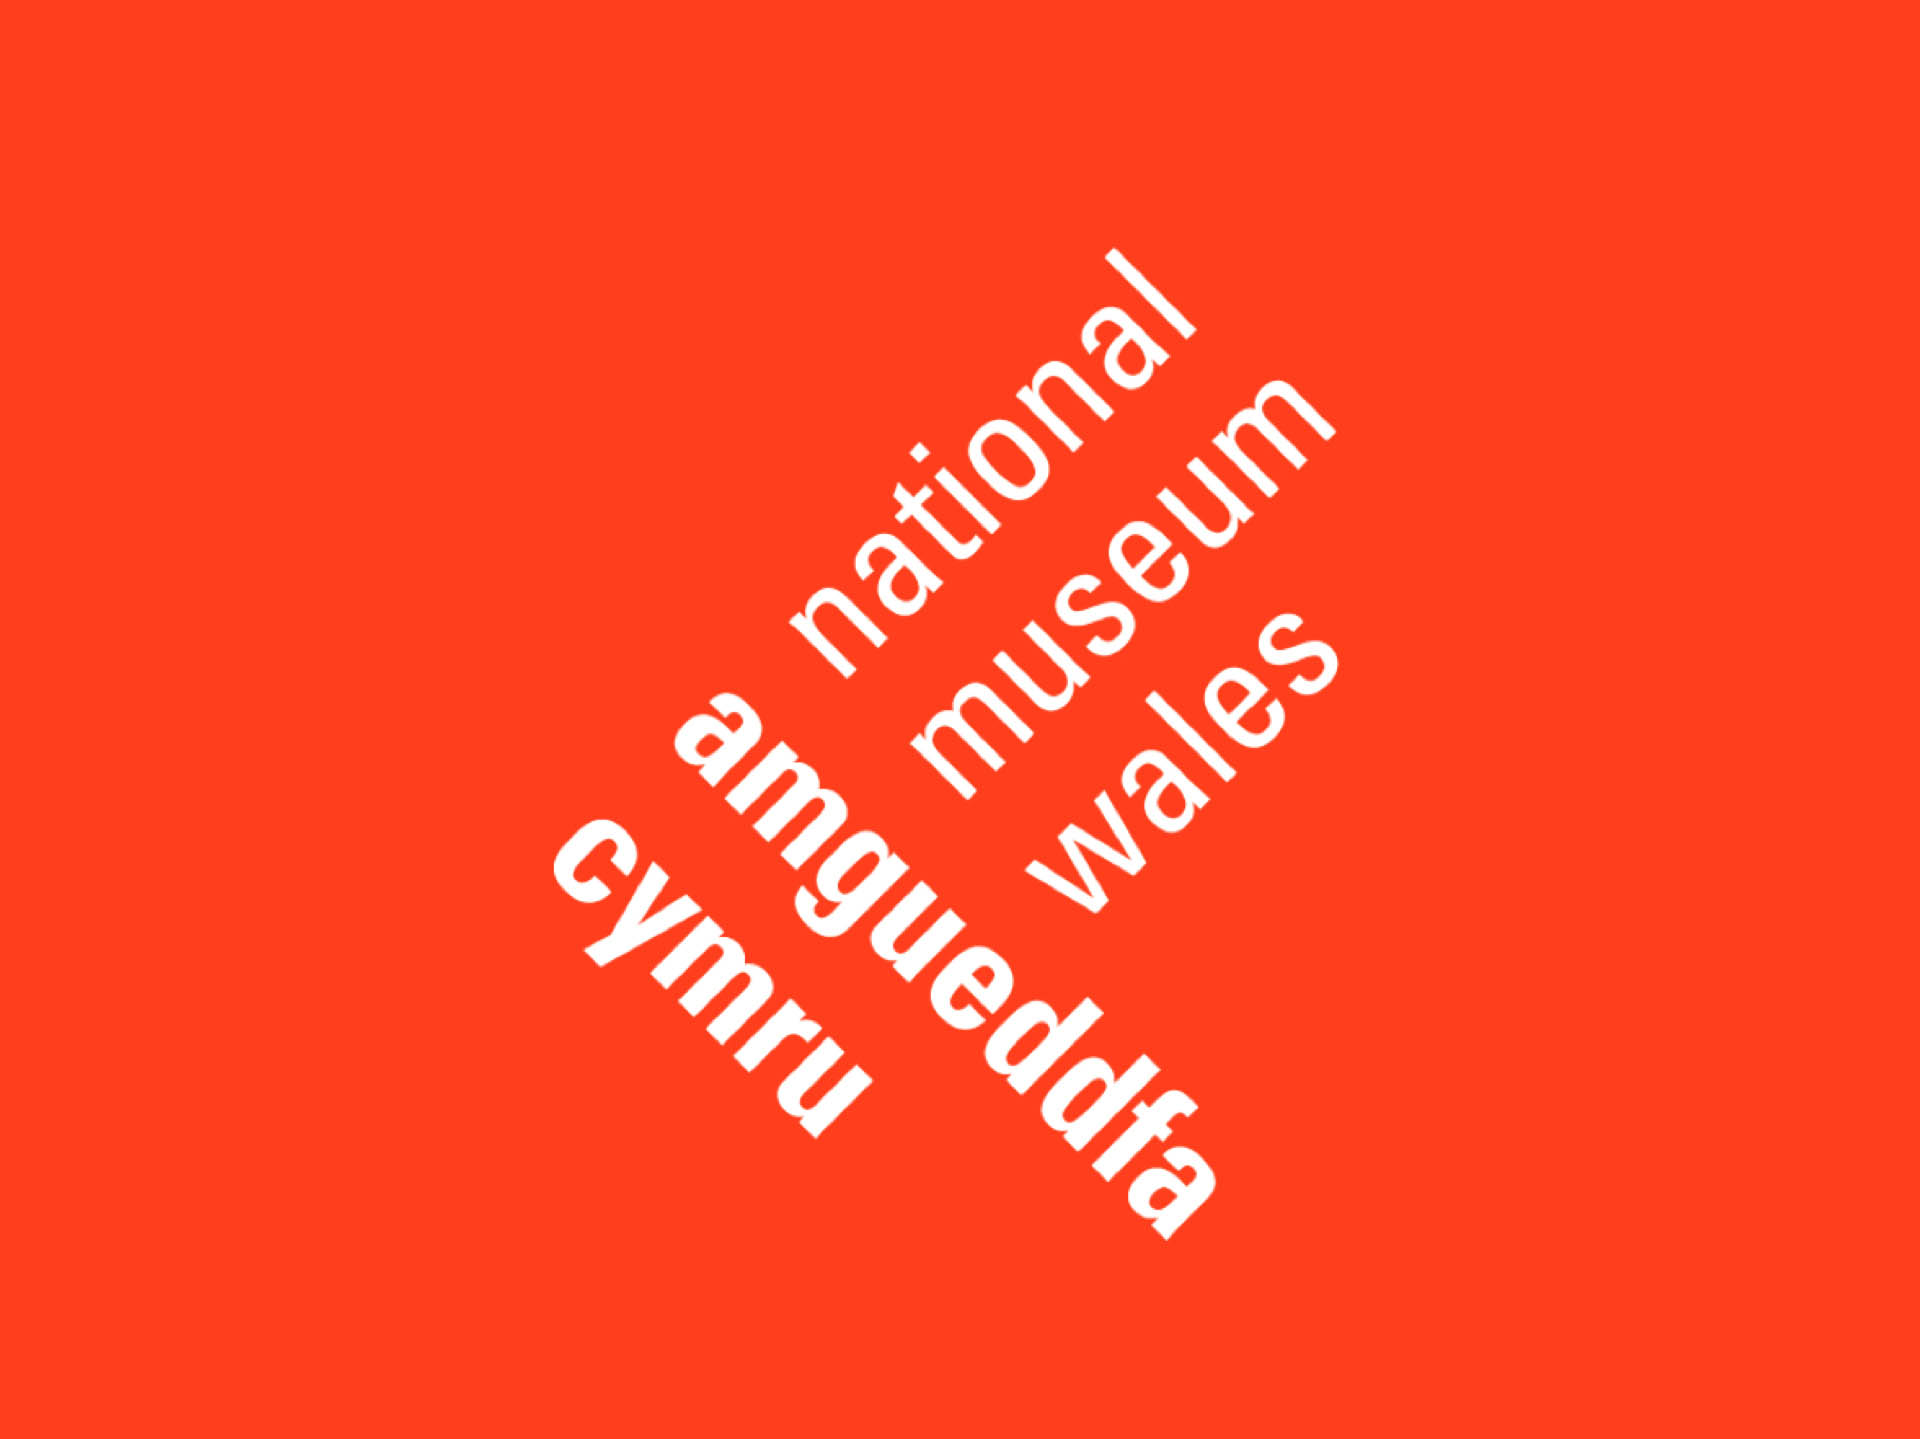 Visual identity for the National Museum Wales